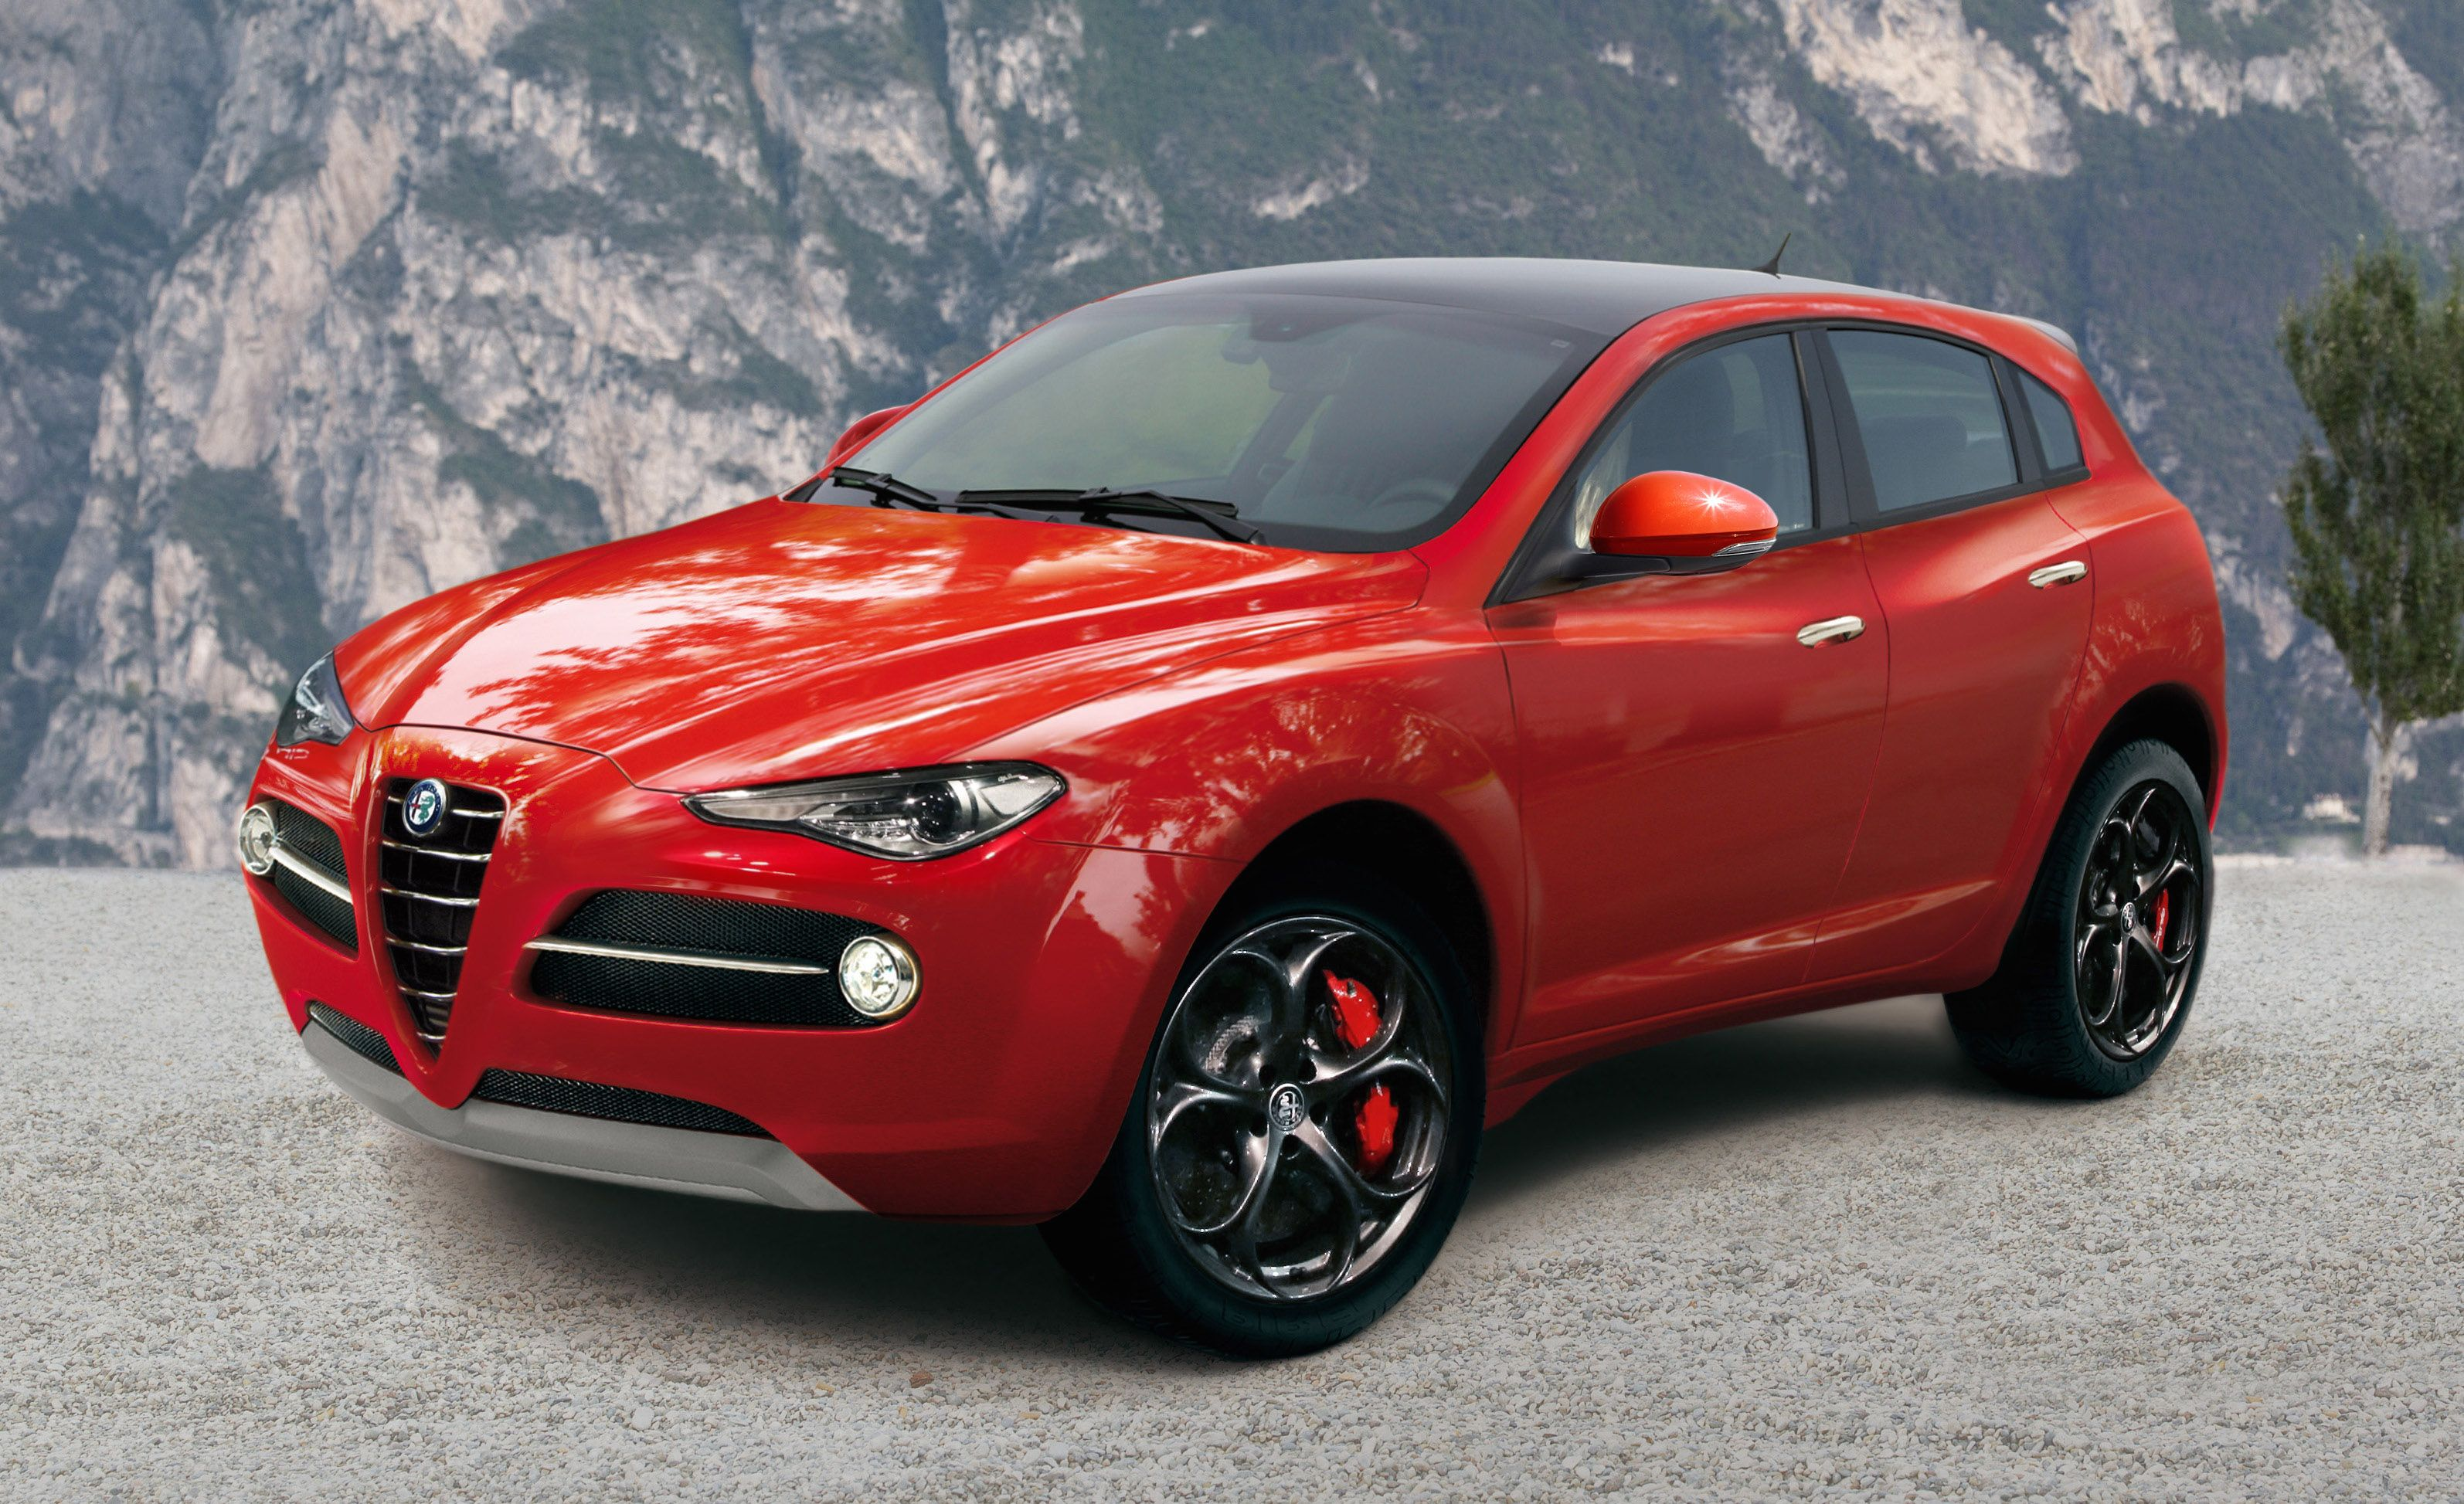 Alfa Romeo Suv Will Be Called The Stelvio Goes On Sale Early 2017